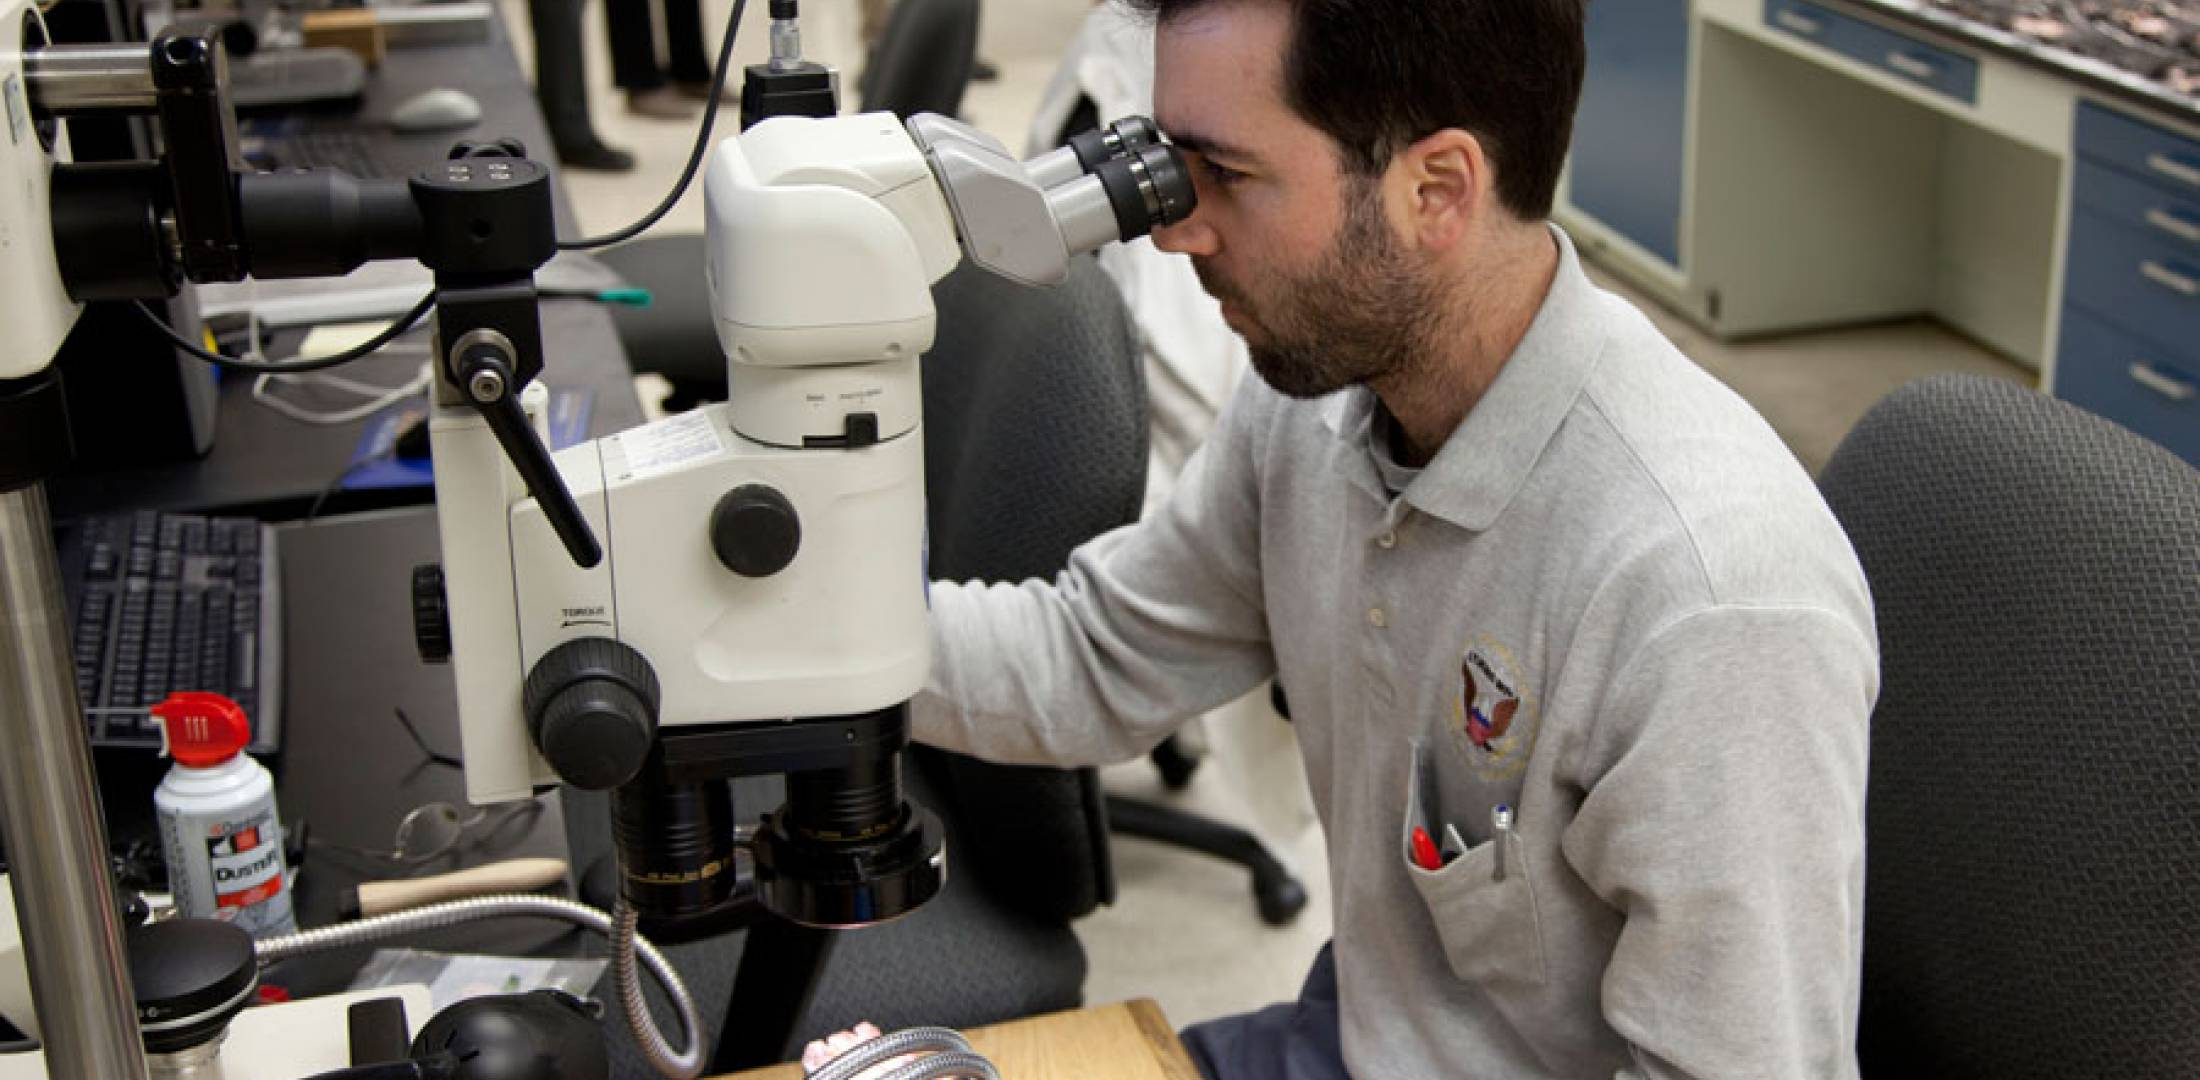 NTSB investigator Joseph Panagiotou uses a stereo microscope to examine a battery cell from the JAL Boeing 787 that caught fire on January 7. (Photo: NTSB)